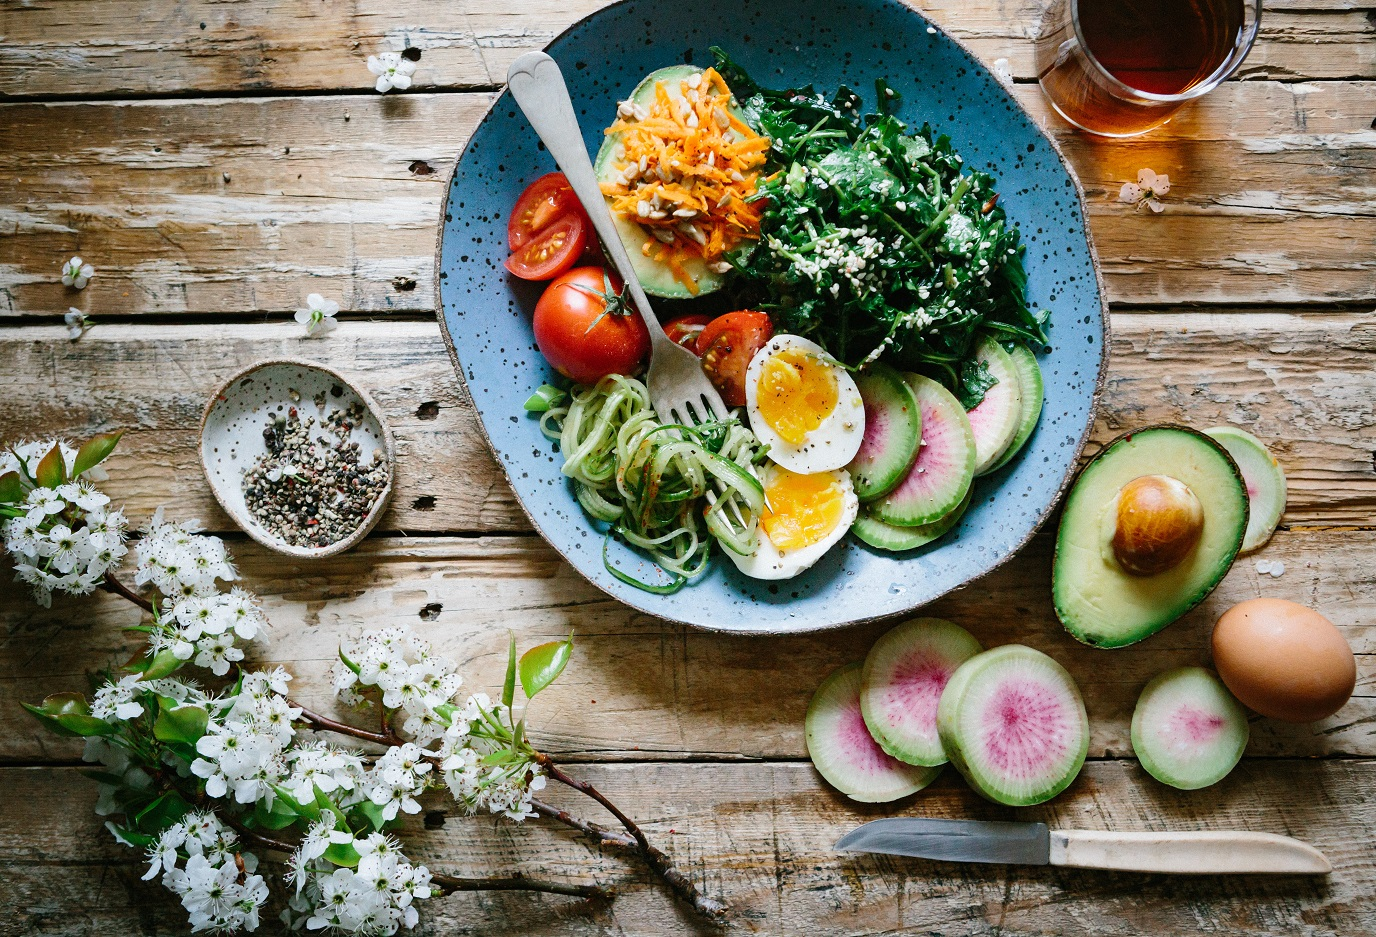 Plate with colorful veggies